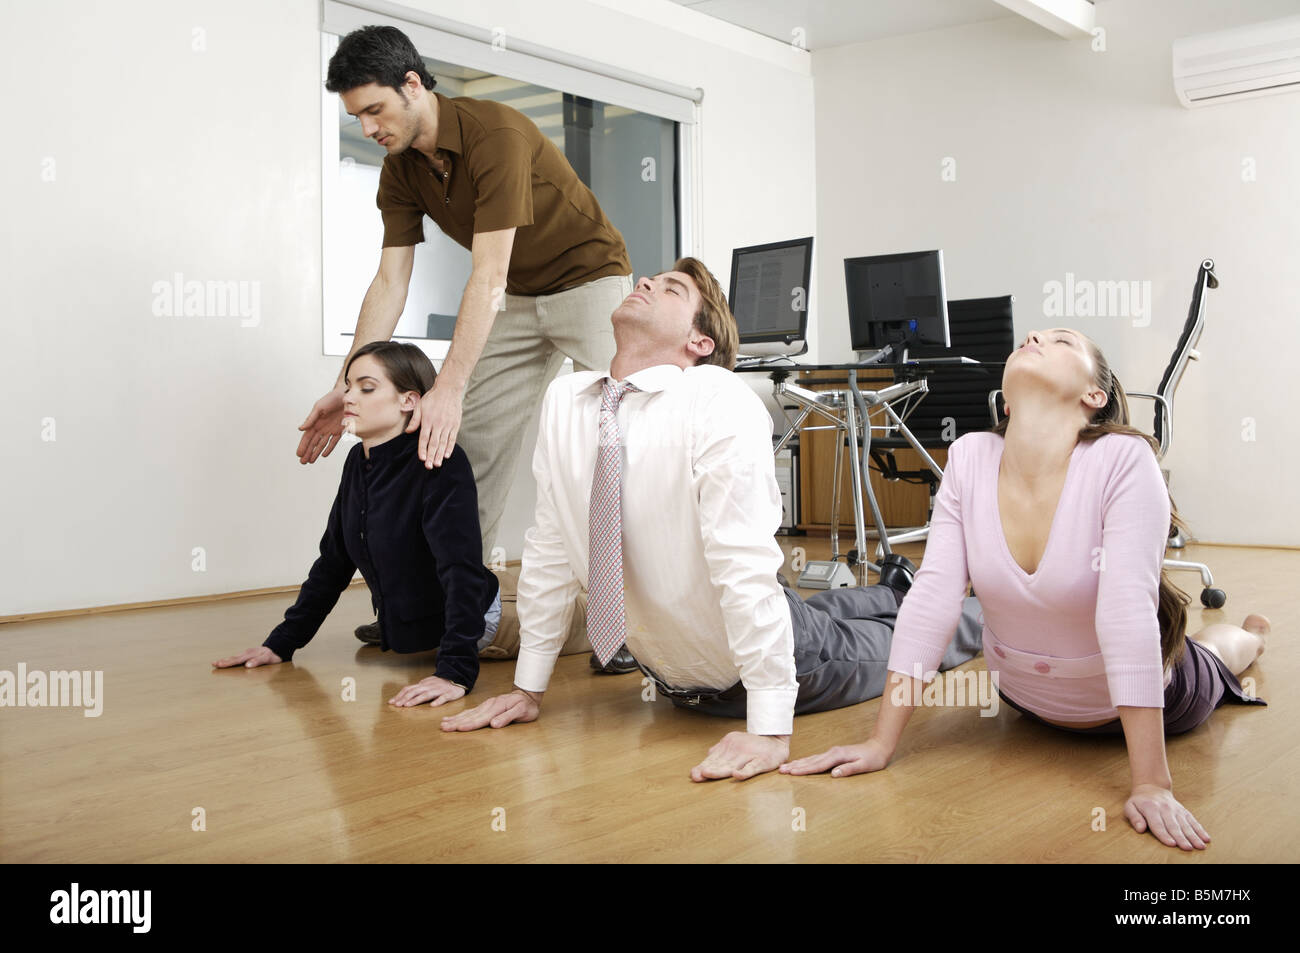 Yoga session at business meeting Stock Photo, Royalty Free